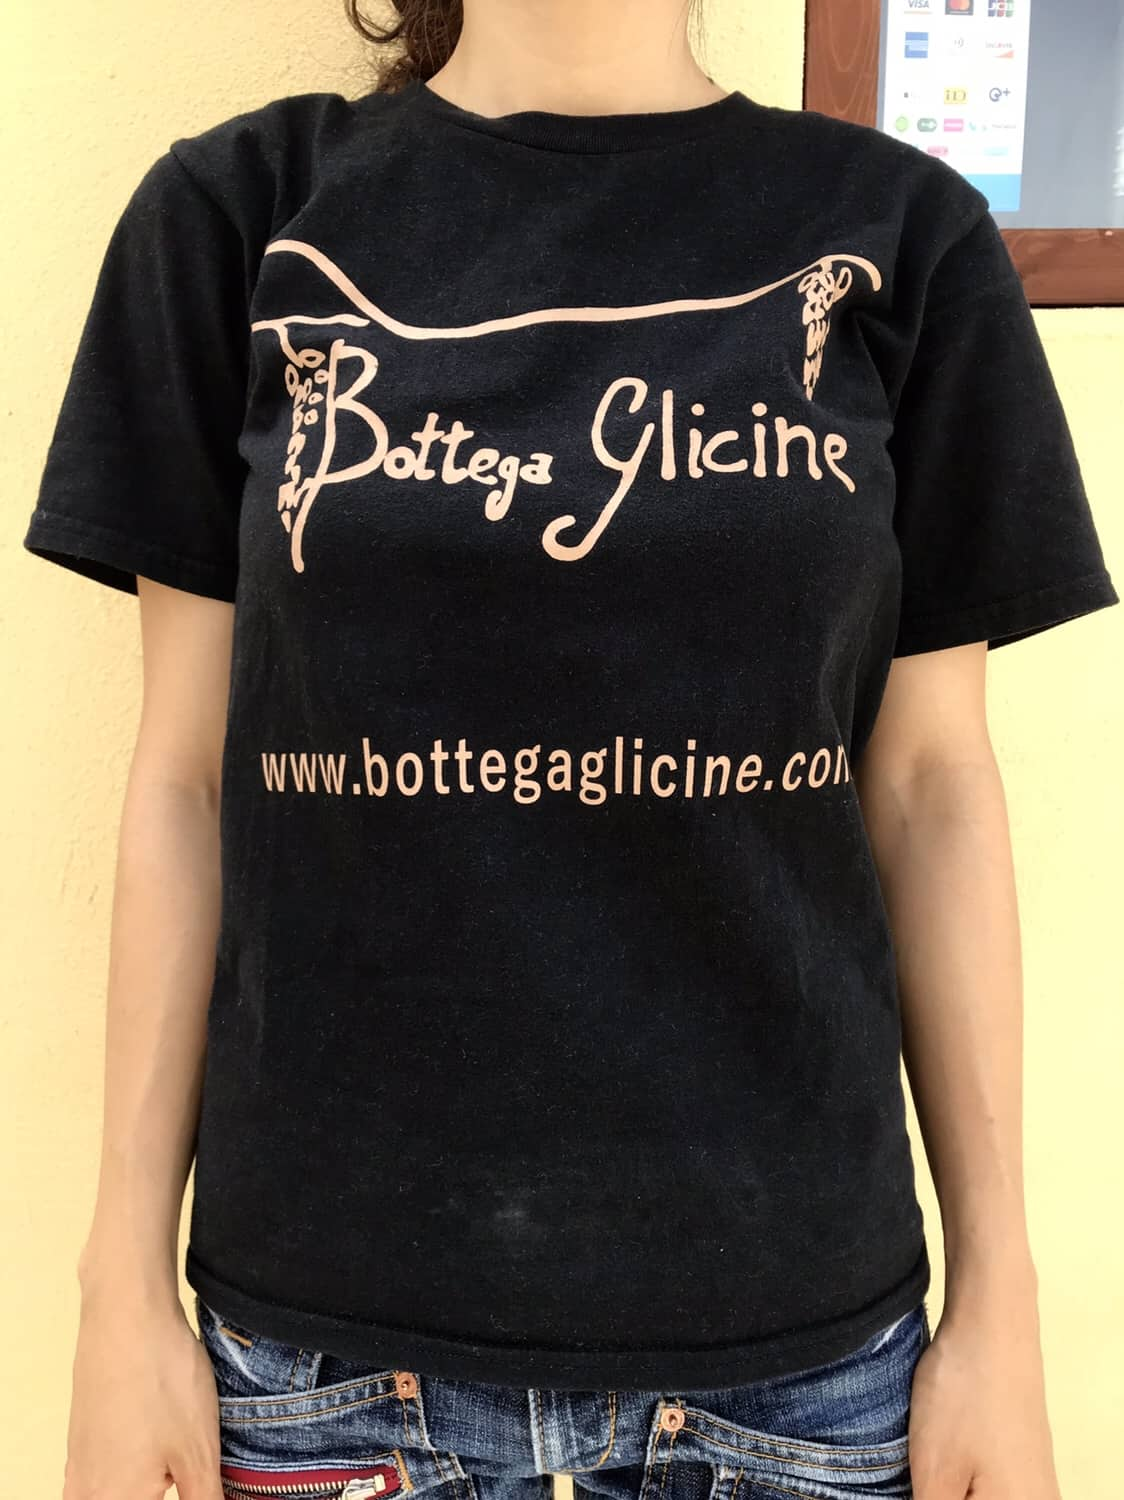 bottegaglicine original t-shirts